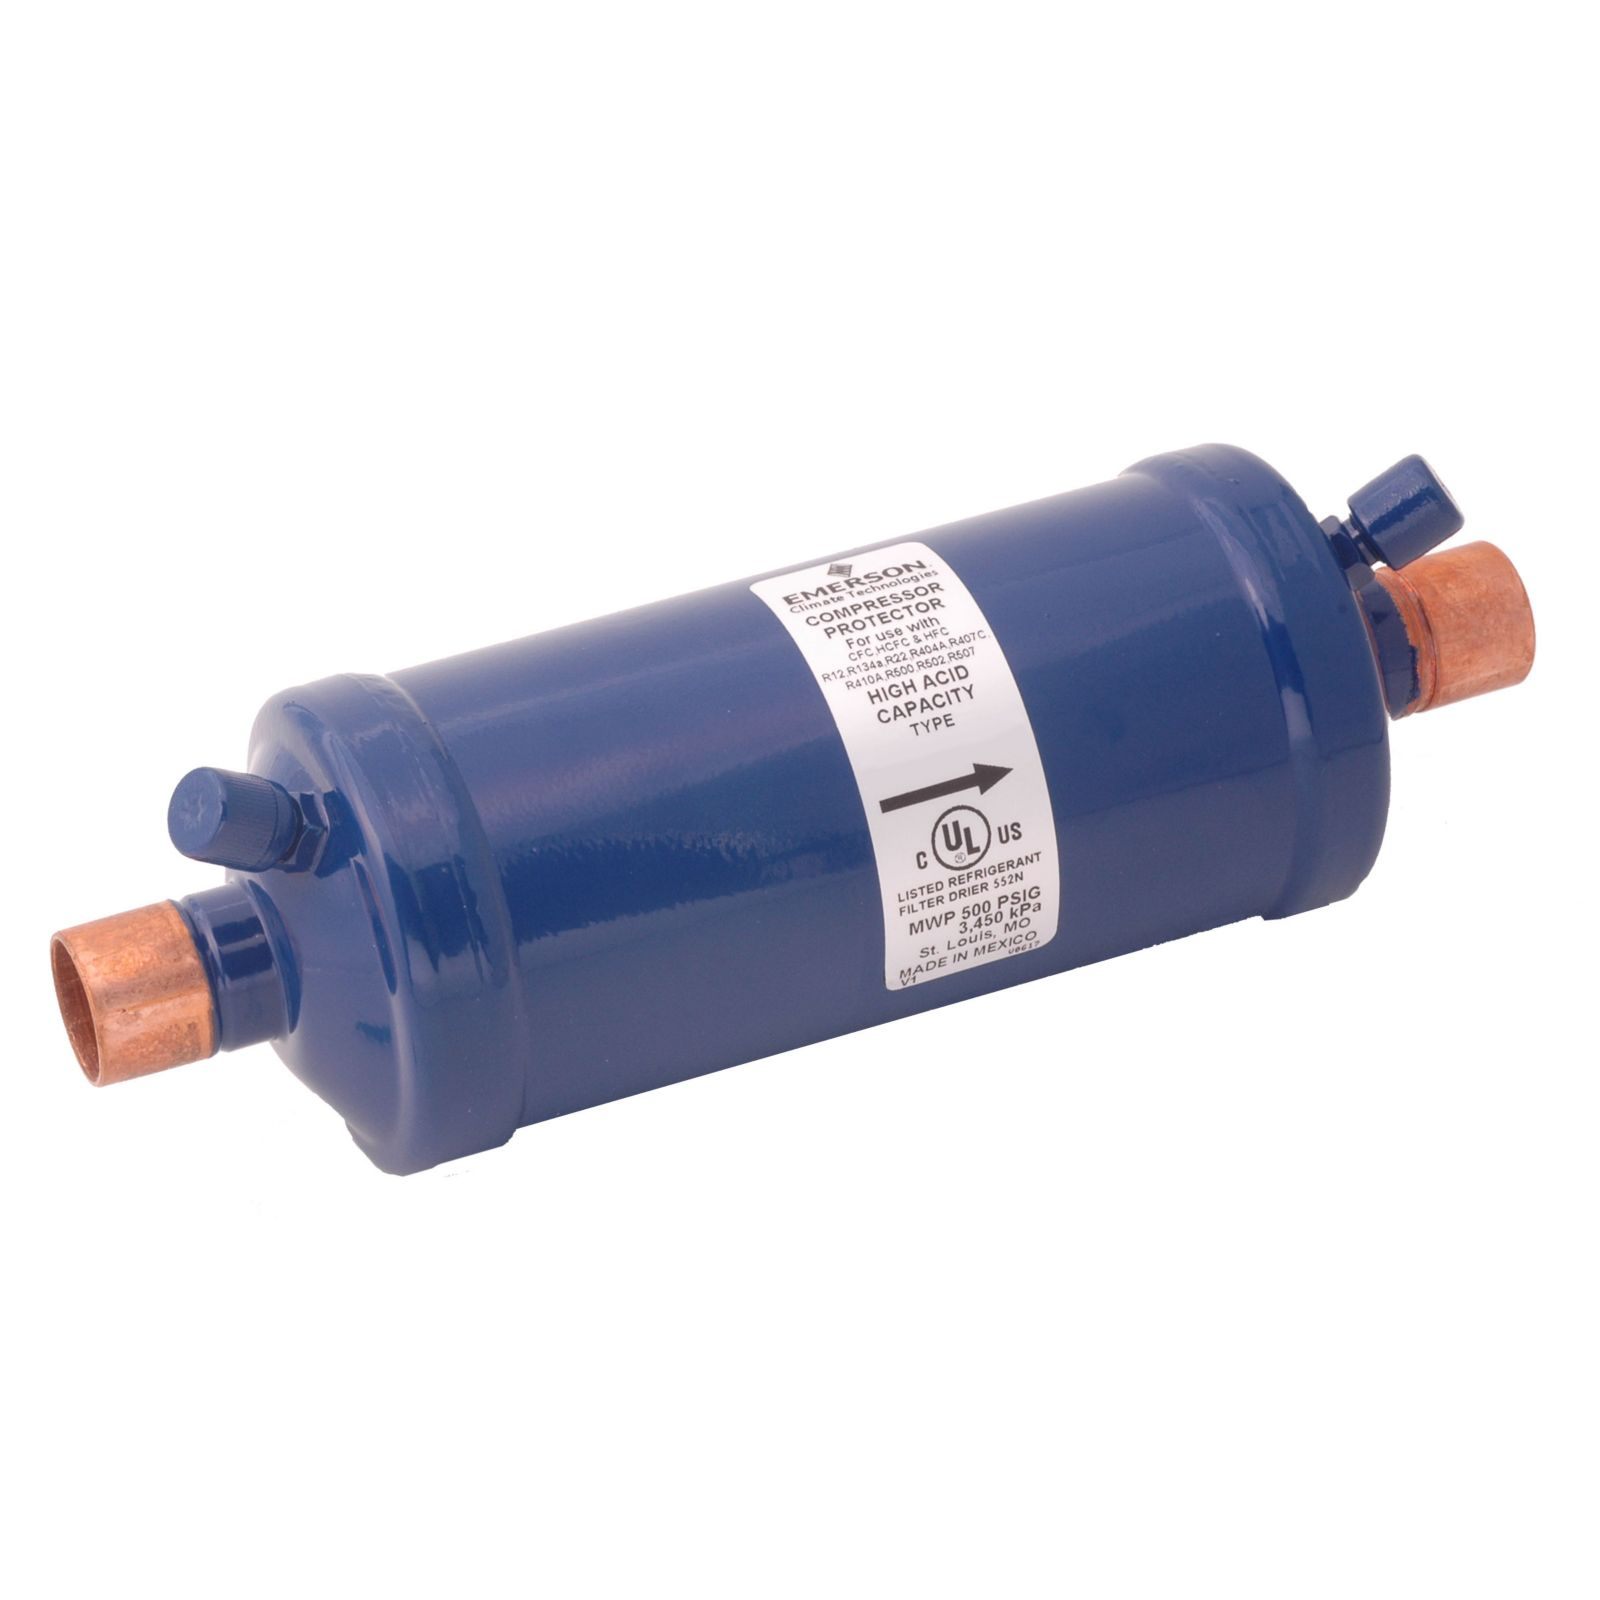 "Emerson 056510 - ASK167Swhh Dual Access Suction Line Filter Drier, 16 Cubic Inch, 7/8"" ODF Connection"